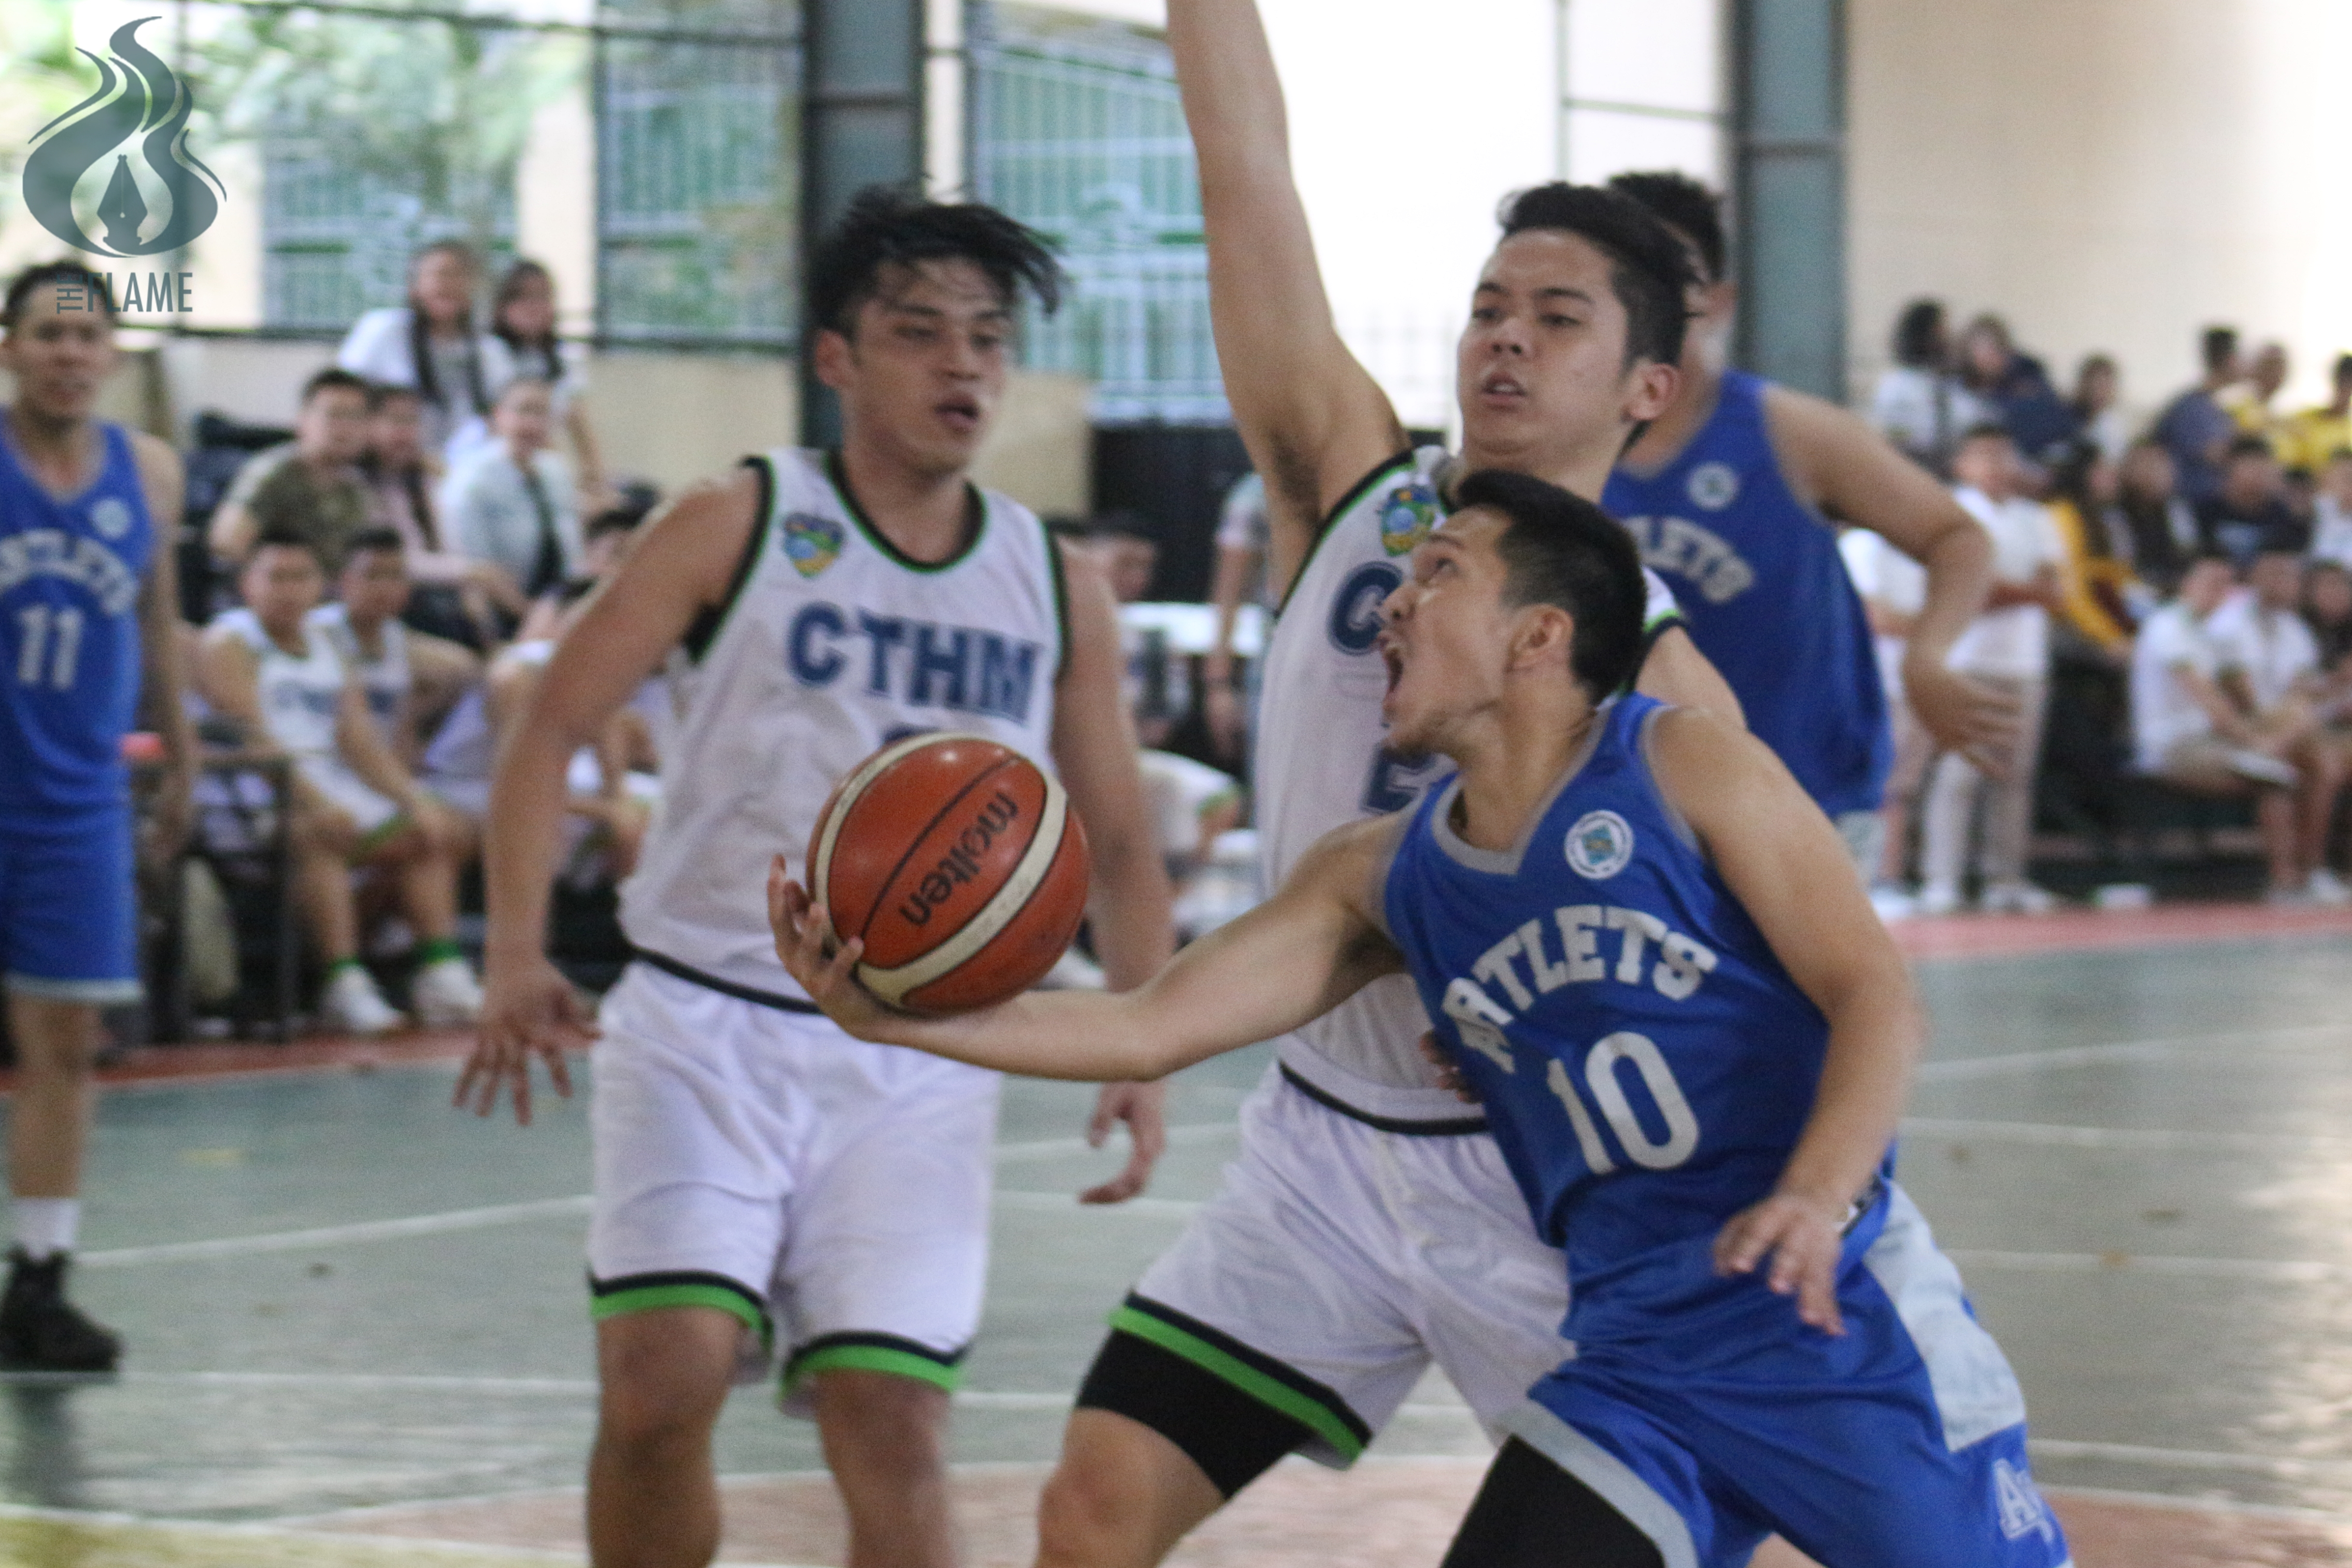 AB Men's sweeps elims round, clinches quarterfinals berth